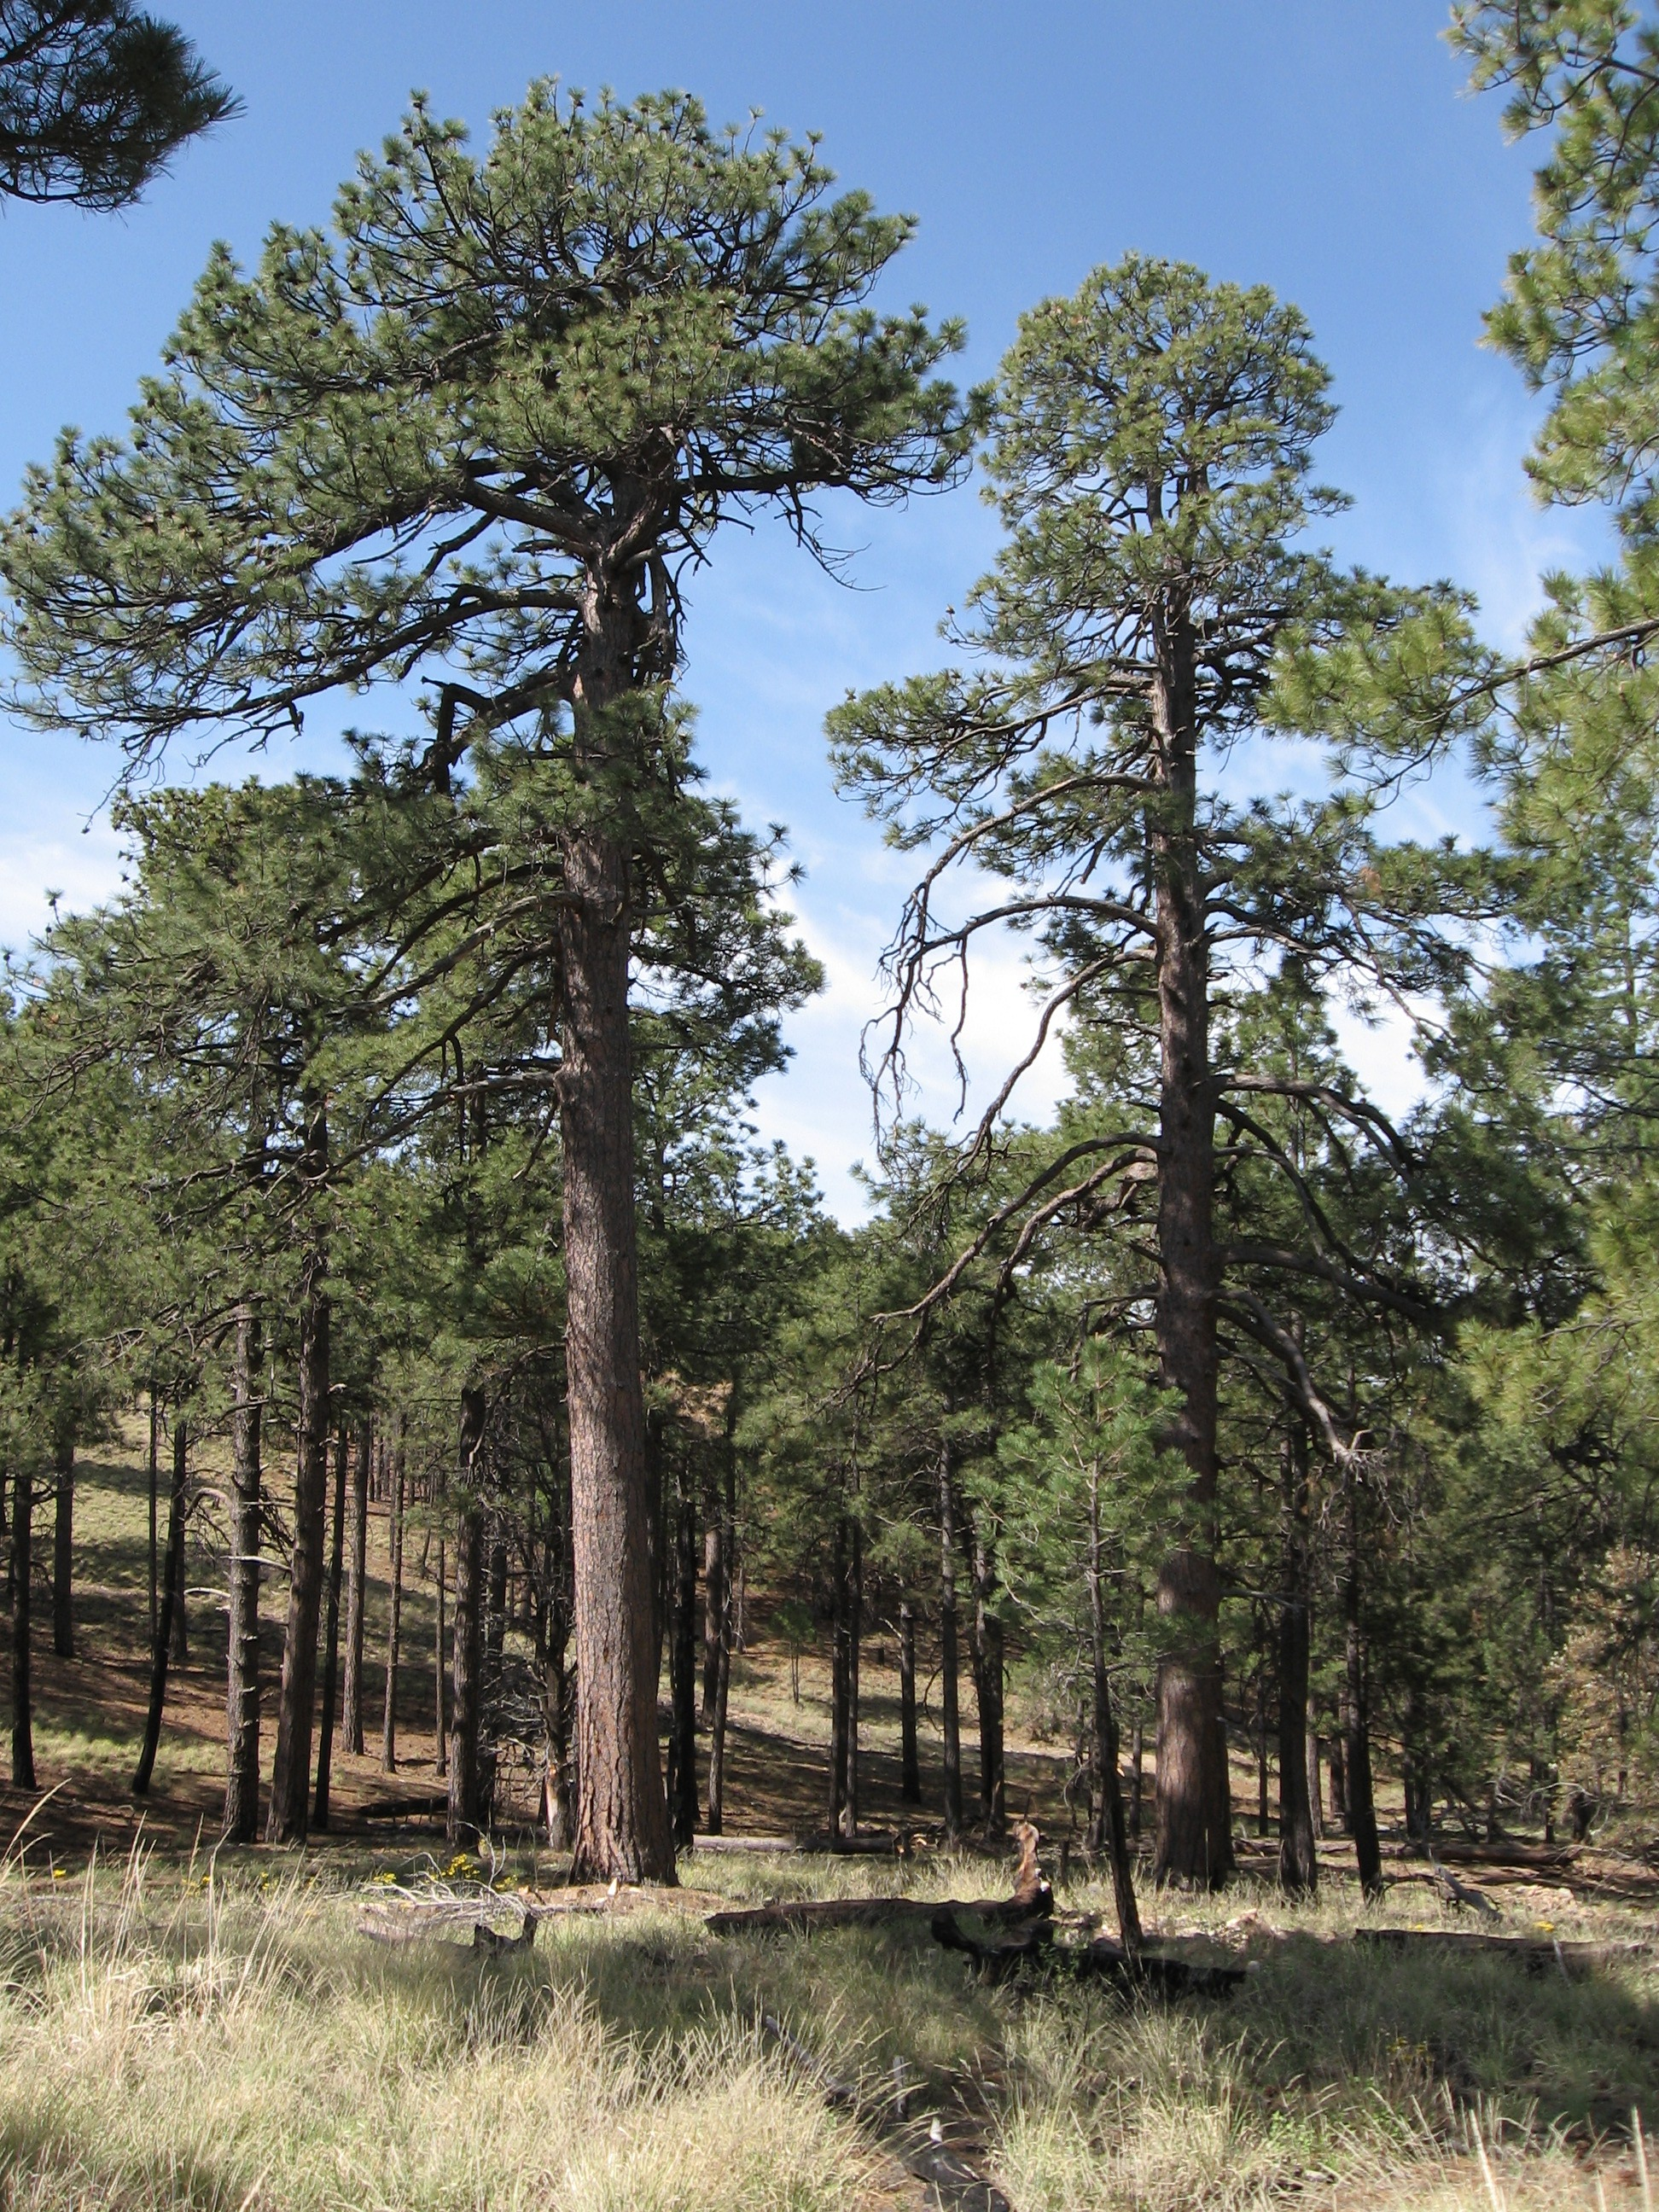 Large ponderosa pines in a natural setting.